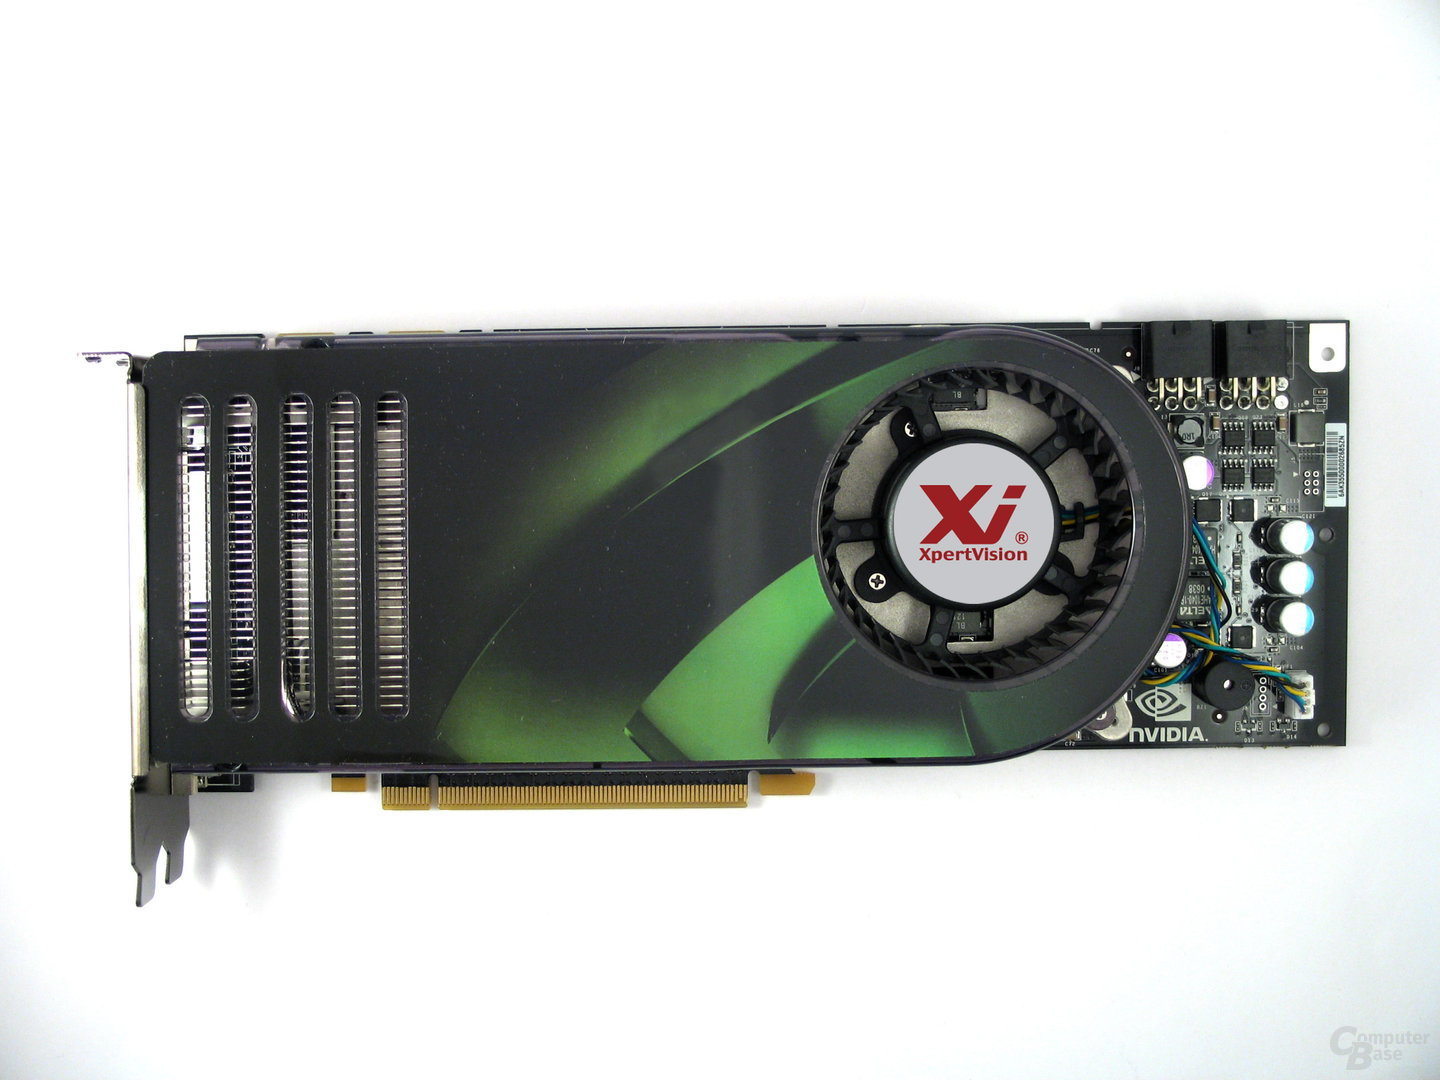 XpertVision Geforce 8800 GTX